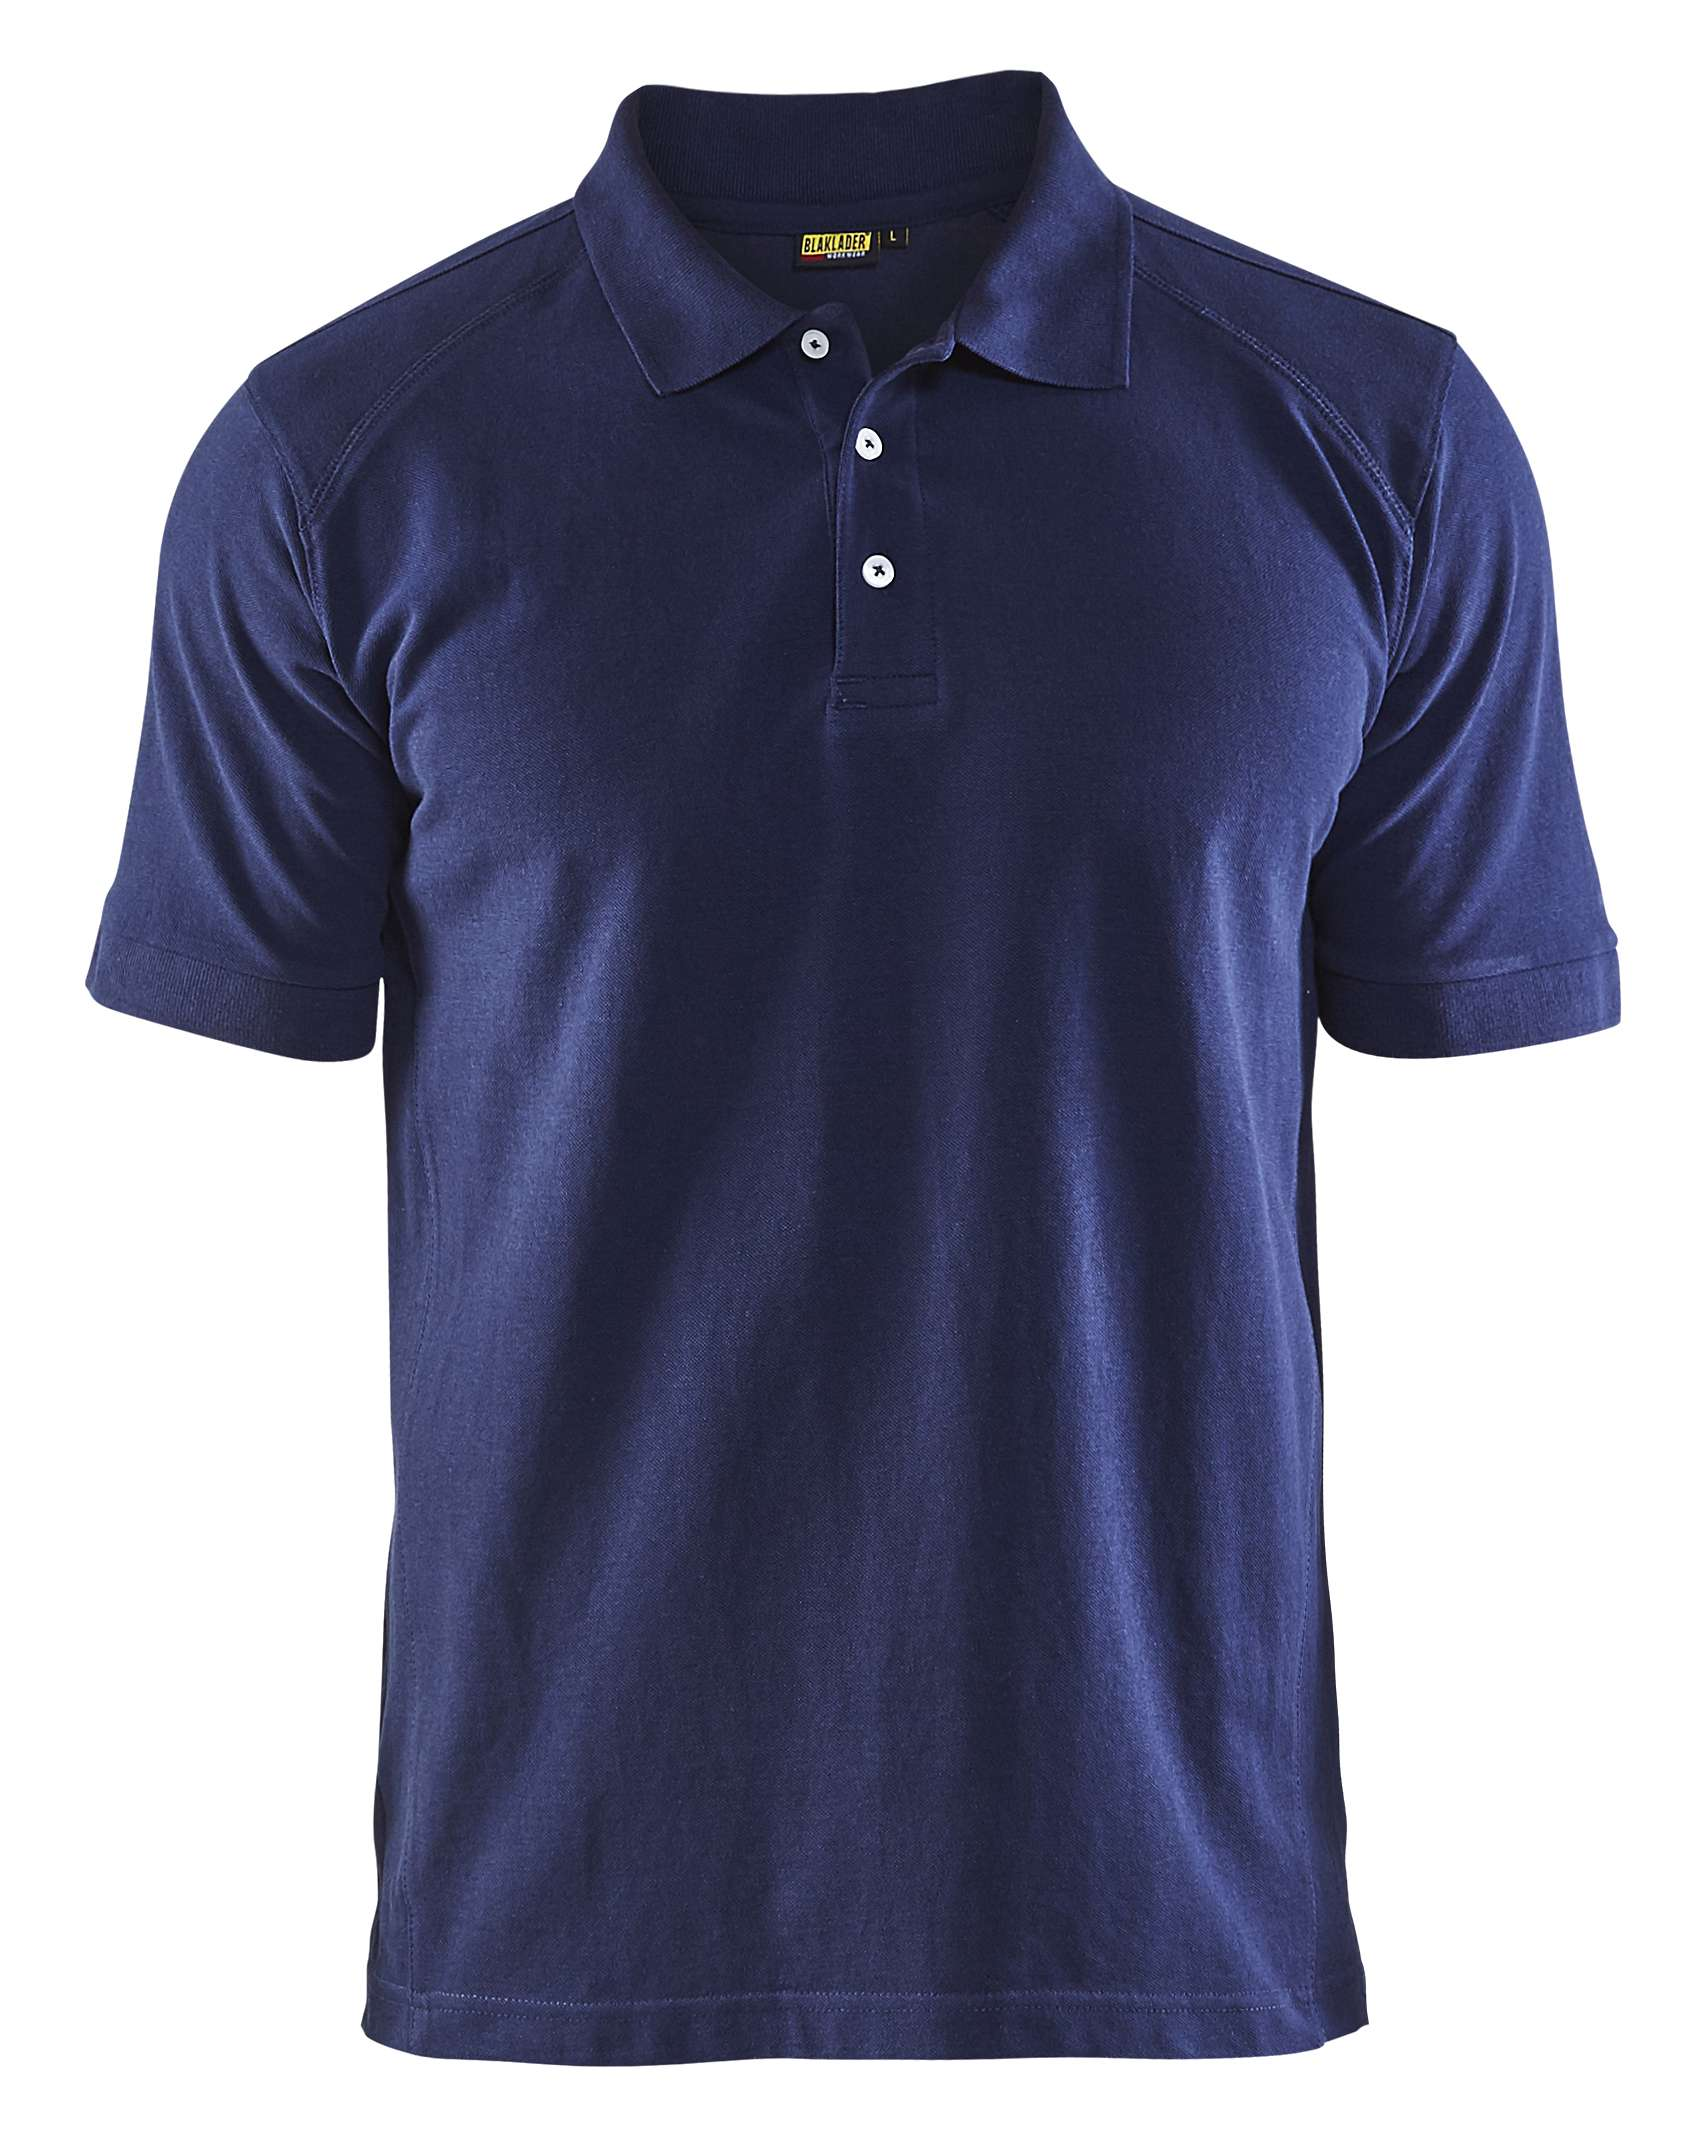 Blaklader Polo shirts 33241050 marineblauw(8900)